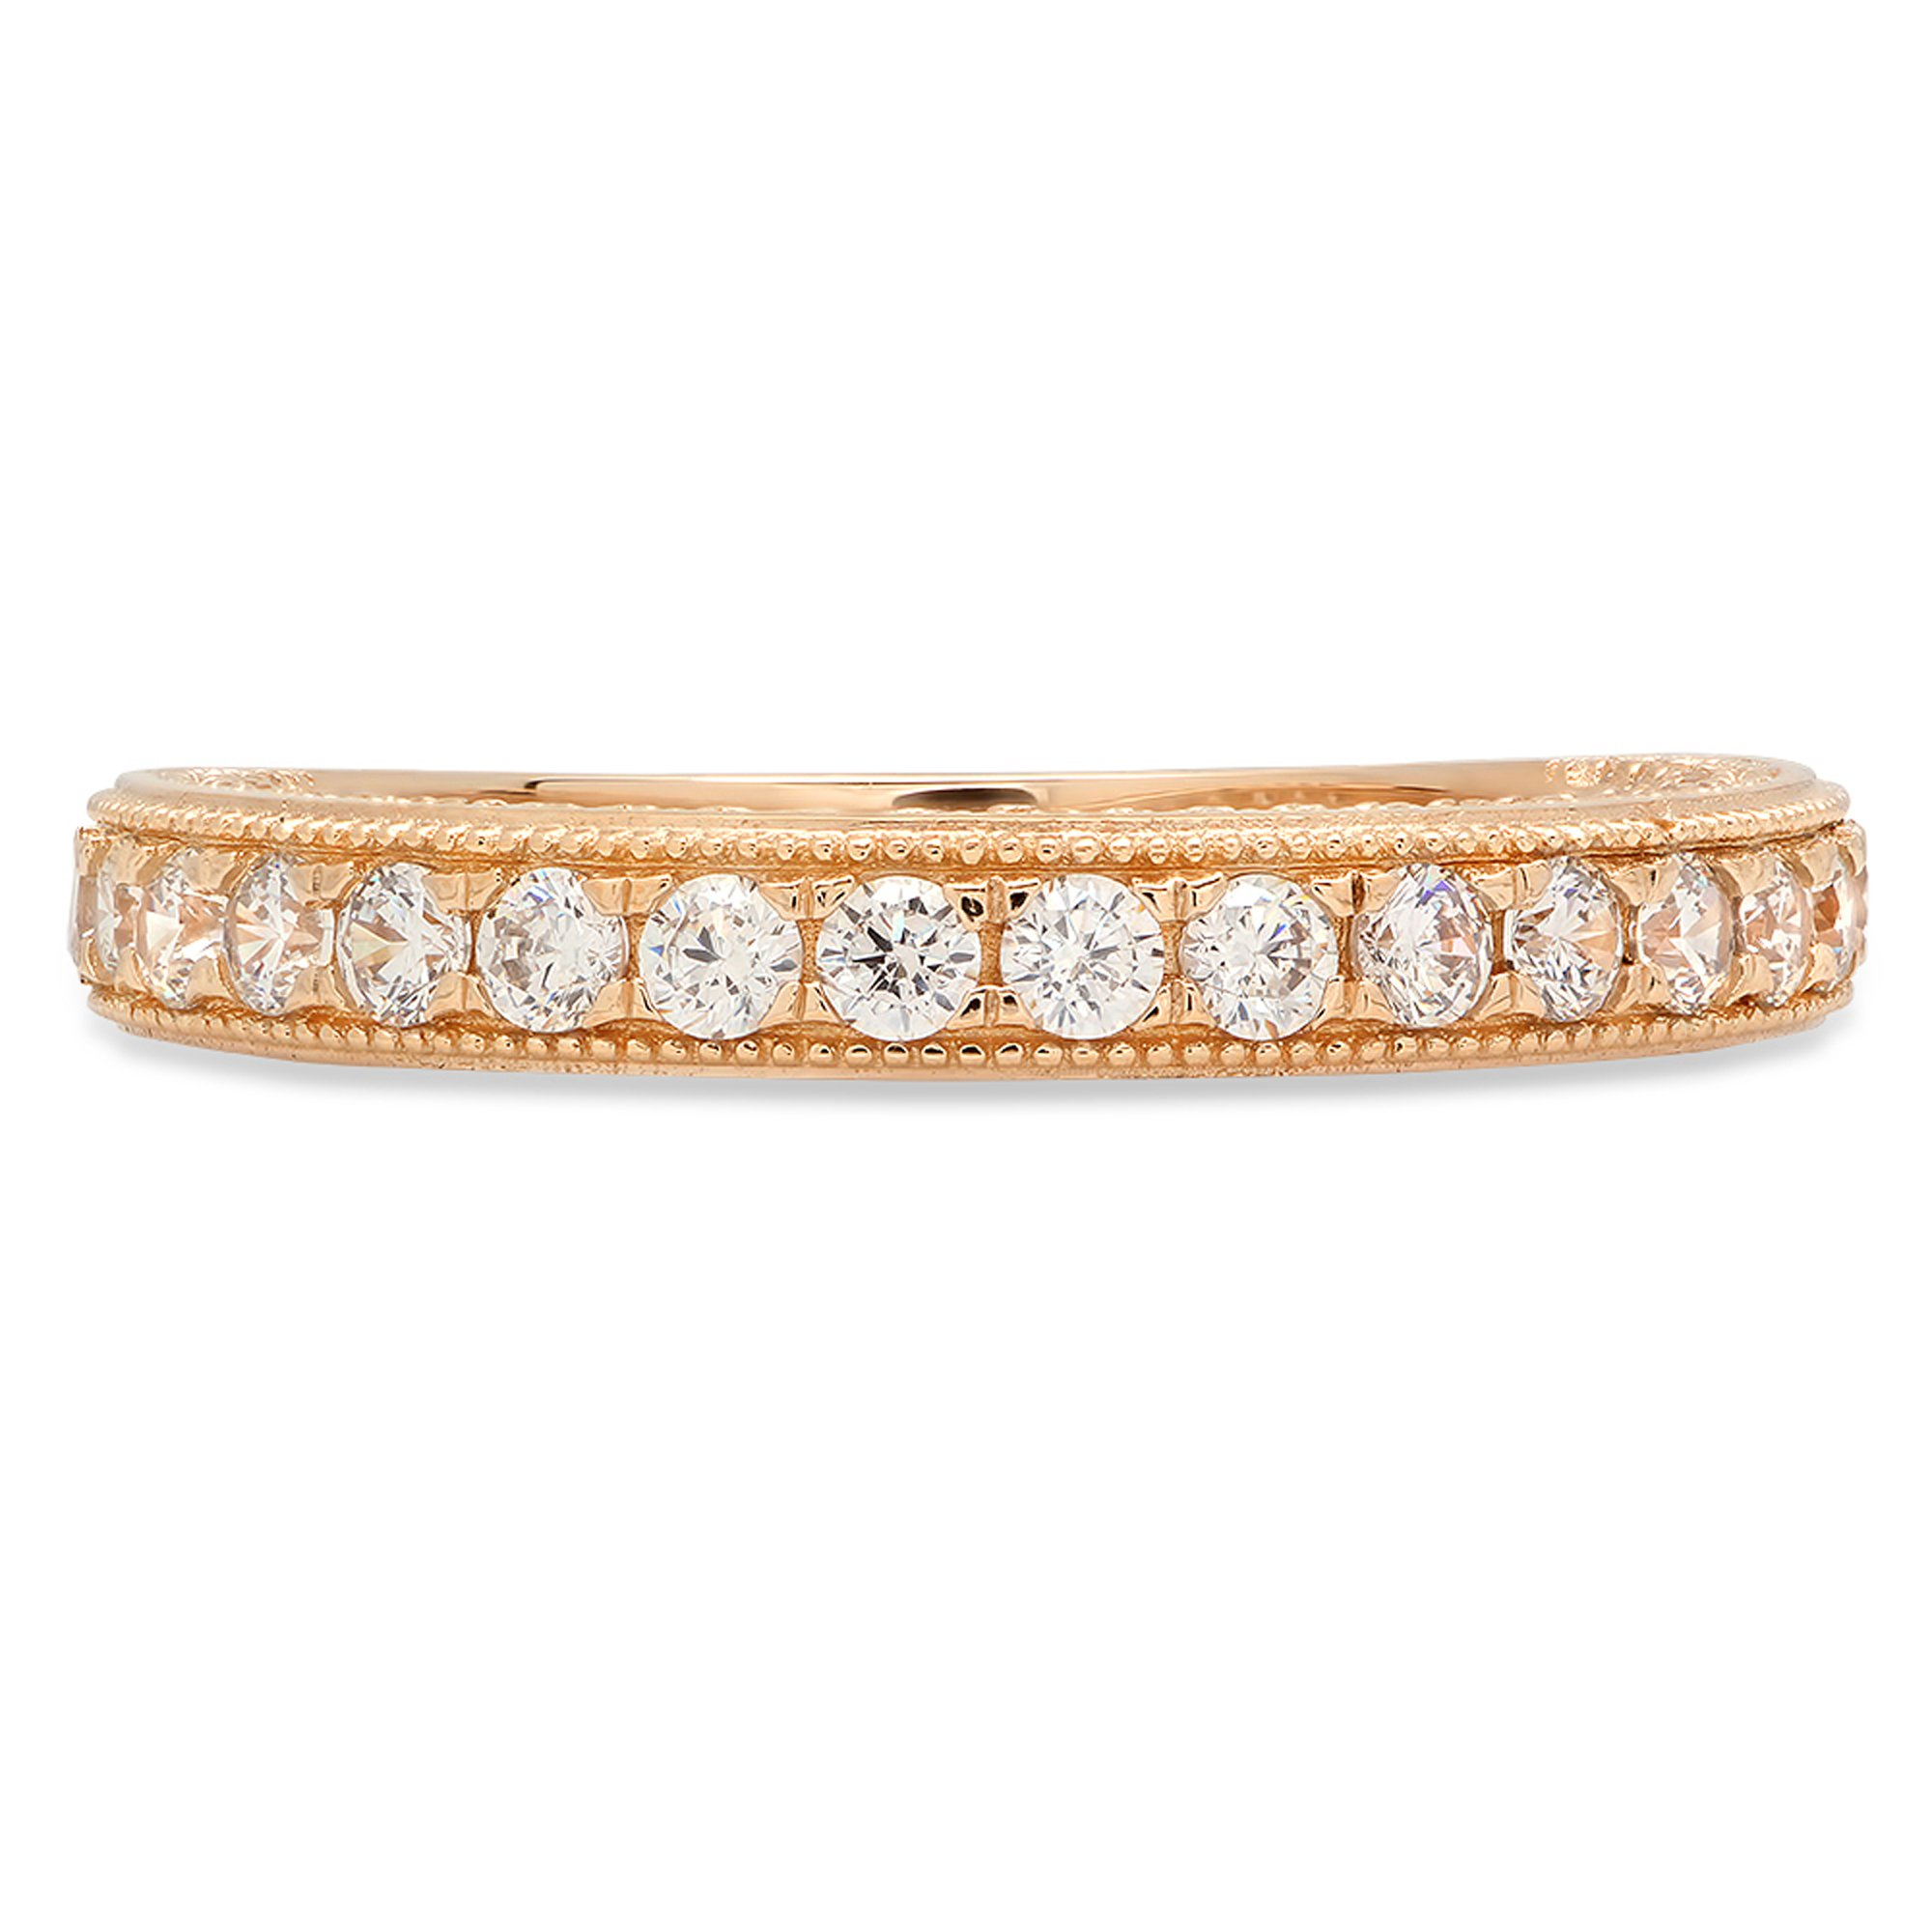 Clara Pucci Round Cut Solitaire Pave Set Wedding Promise Bridal Eternity Engagement Band Ring 14k Yellow Gold, 0.85CT, Size7